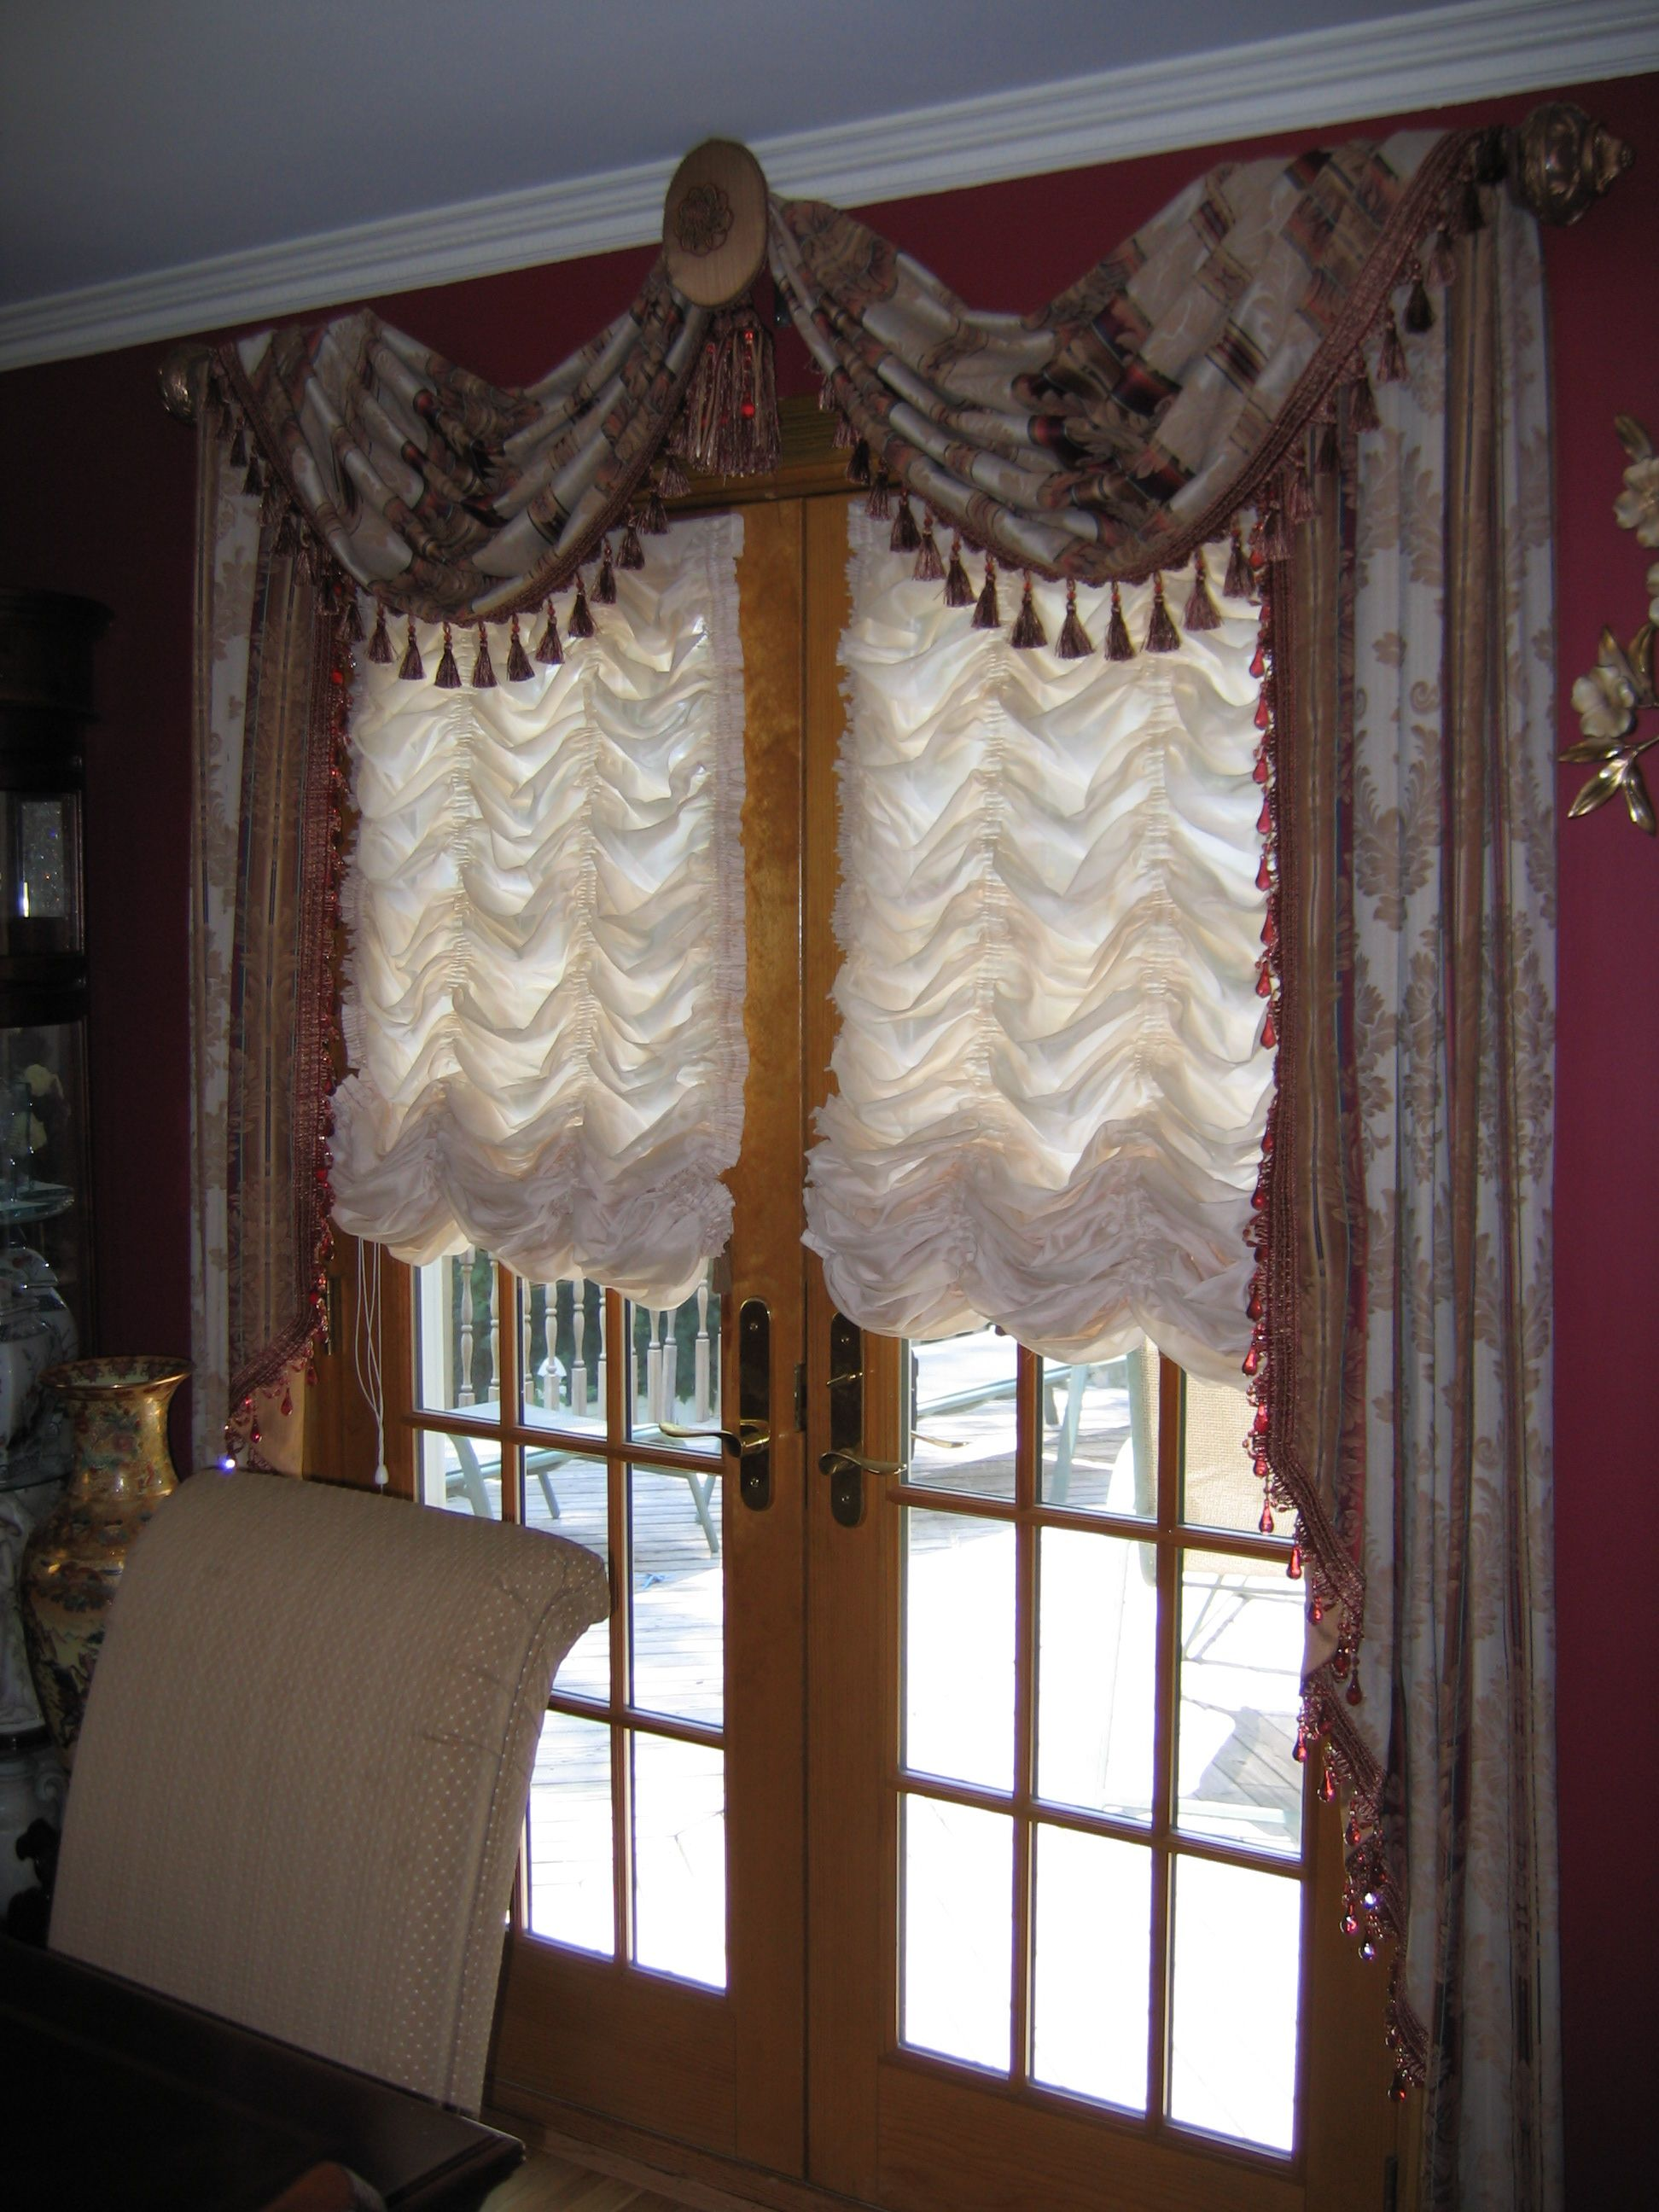 Throw Style Swags Jabots On French Doors Over Austrian Shades